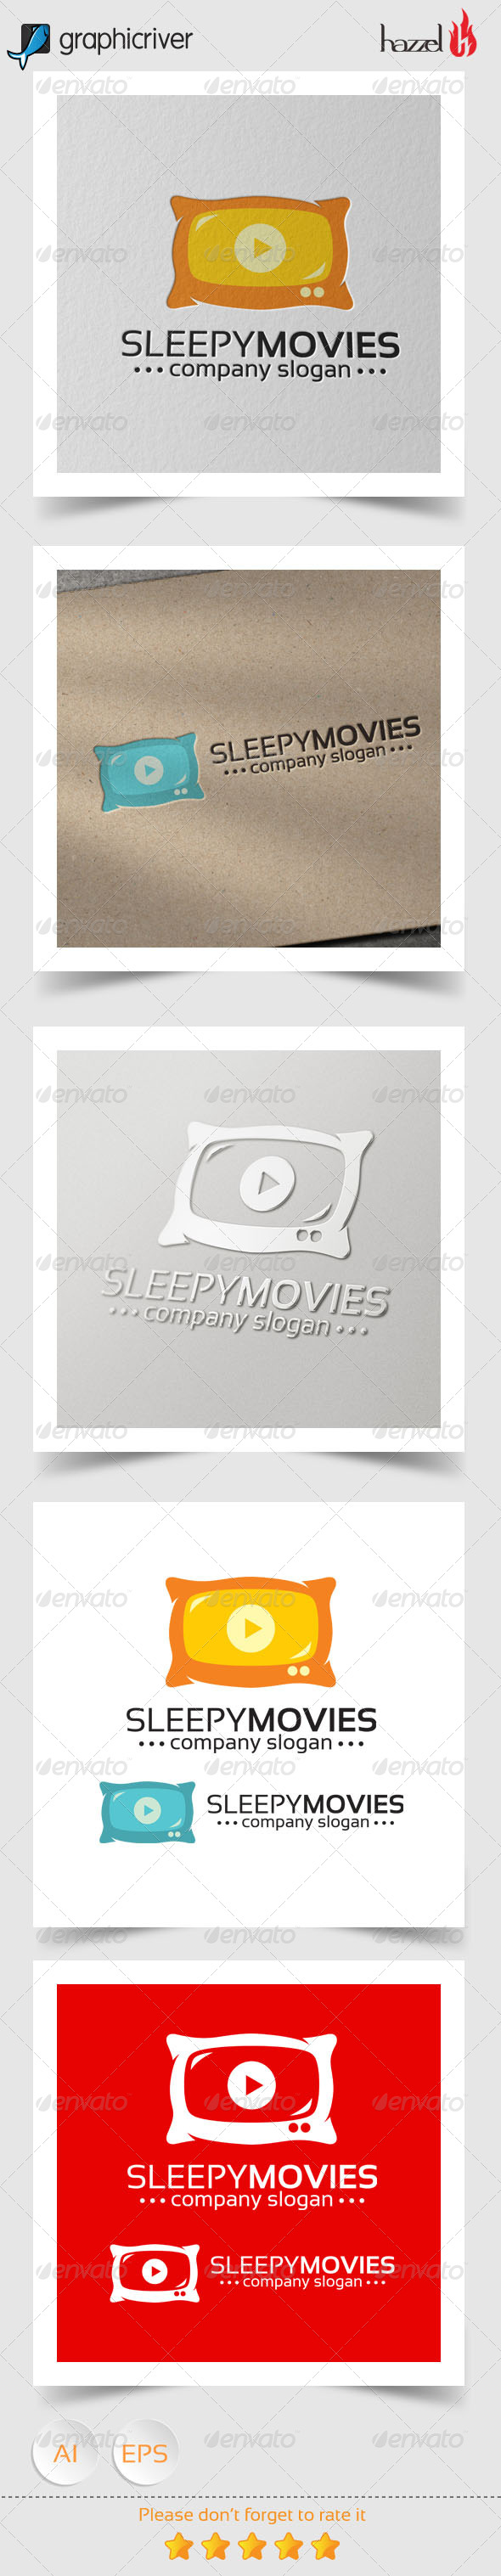 GraphicRiver Sleepy Movies Logo 8343381